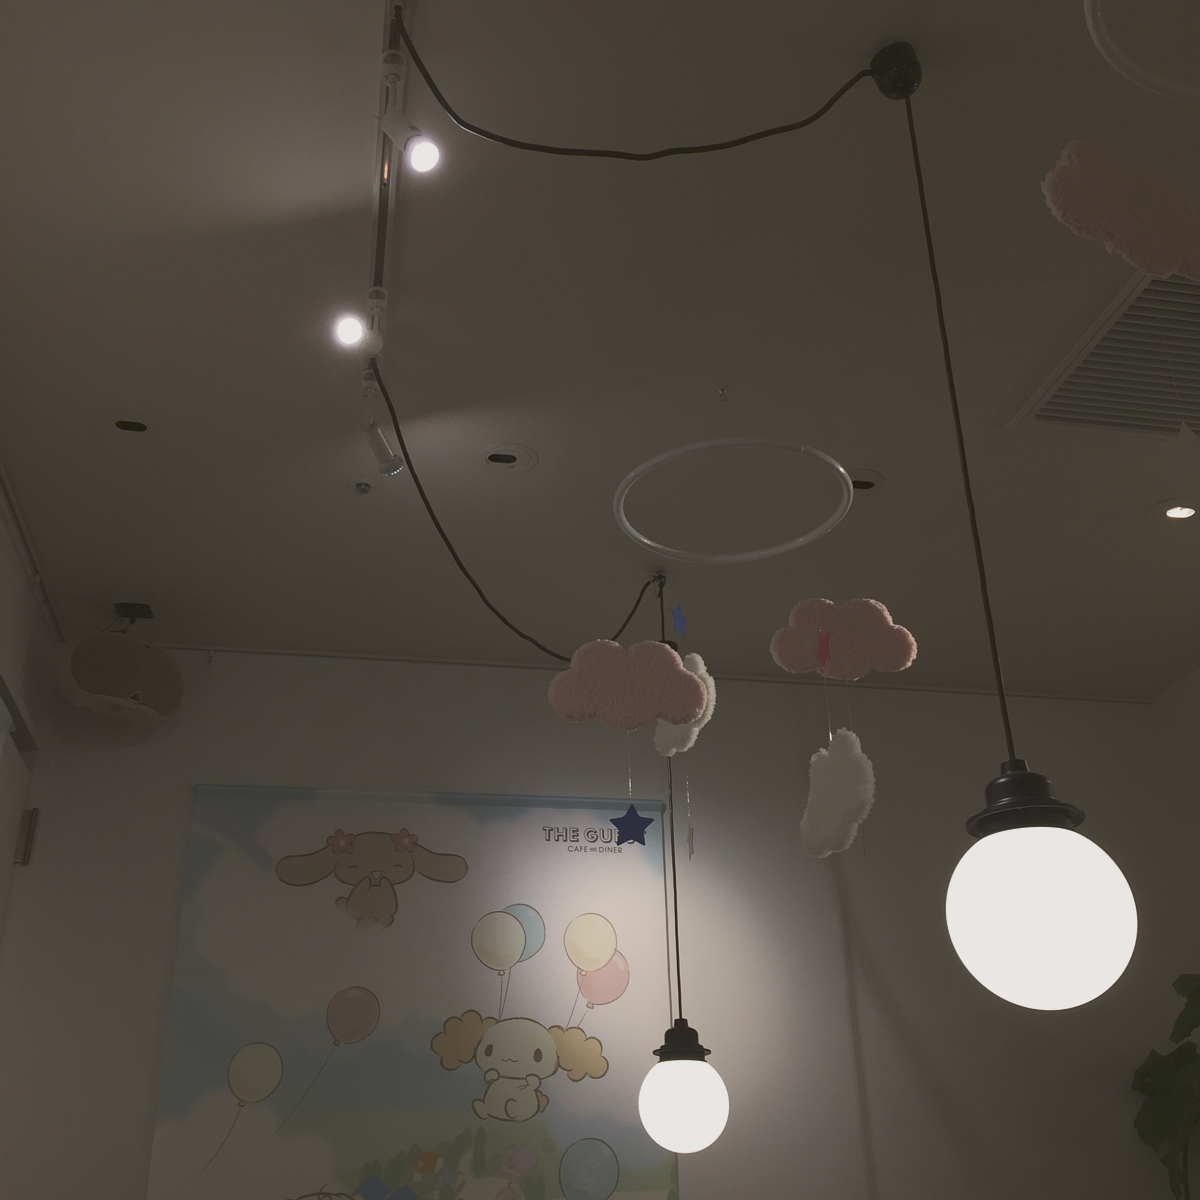 Photo 12-31-15, 5 00 35 PMkawaii cinnamoroll cafe shibuya